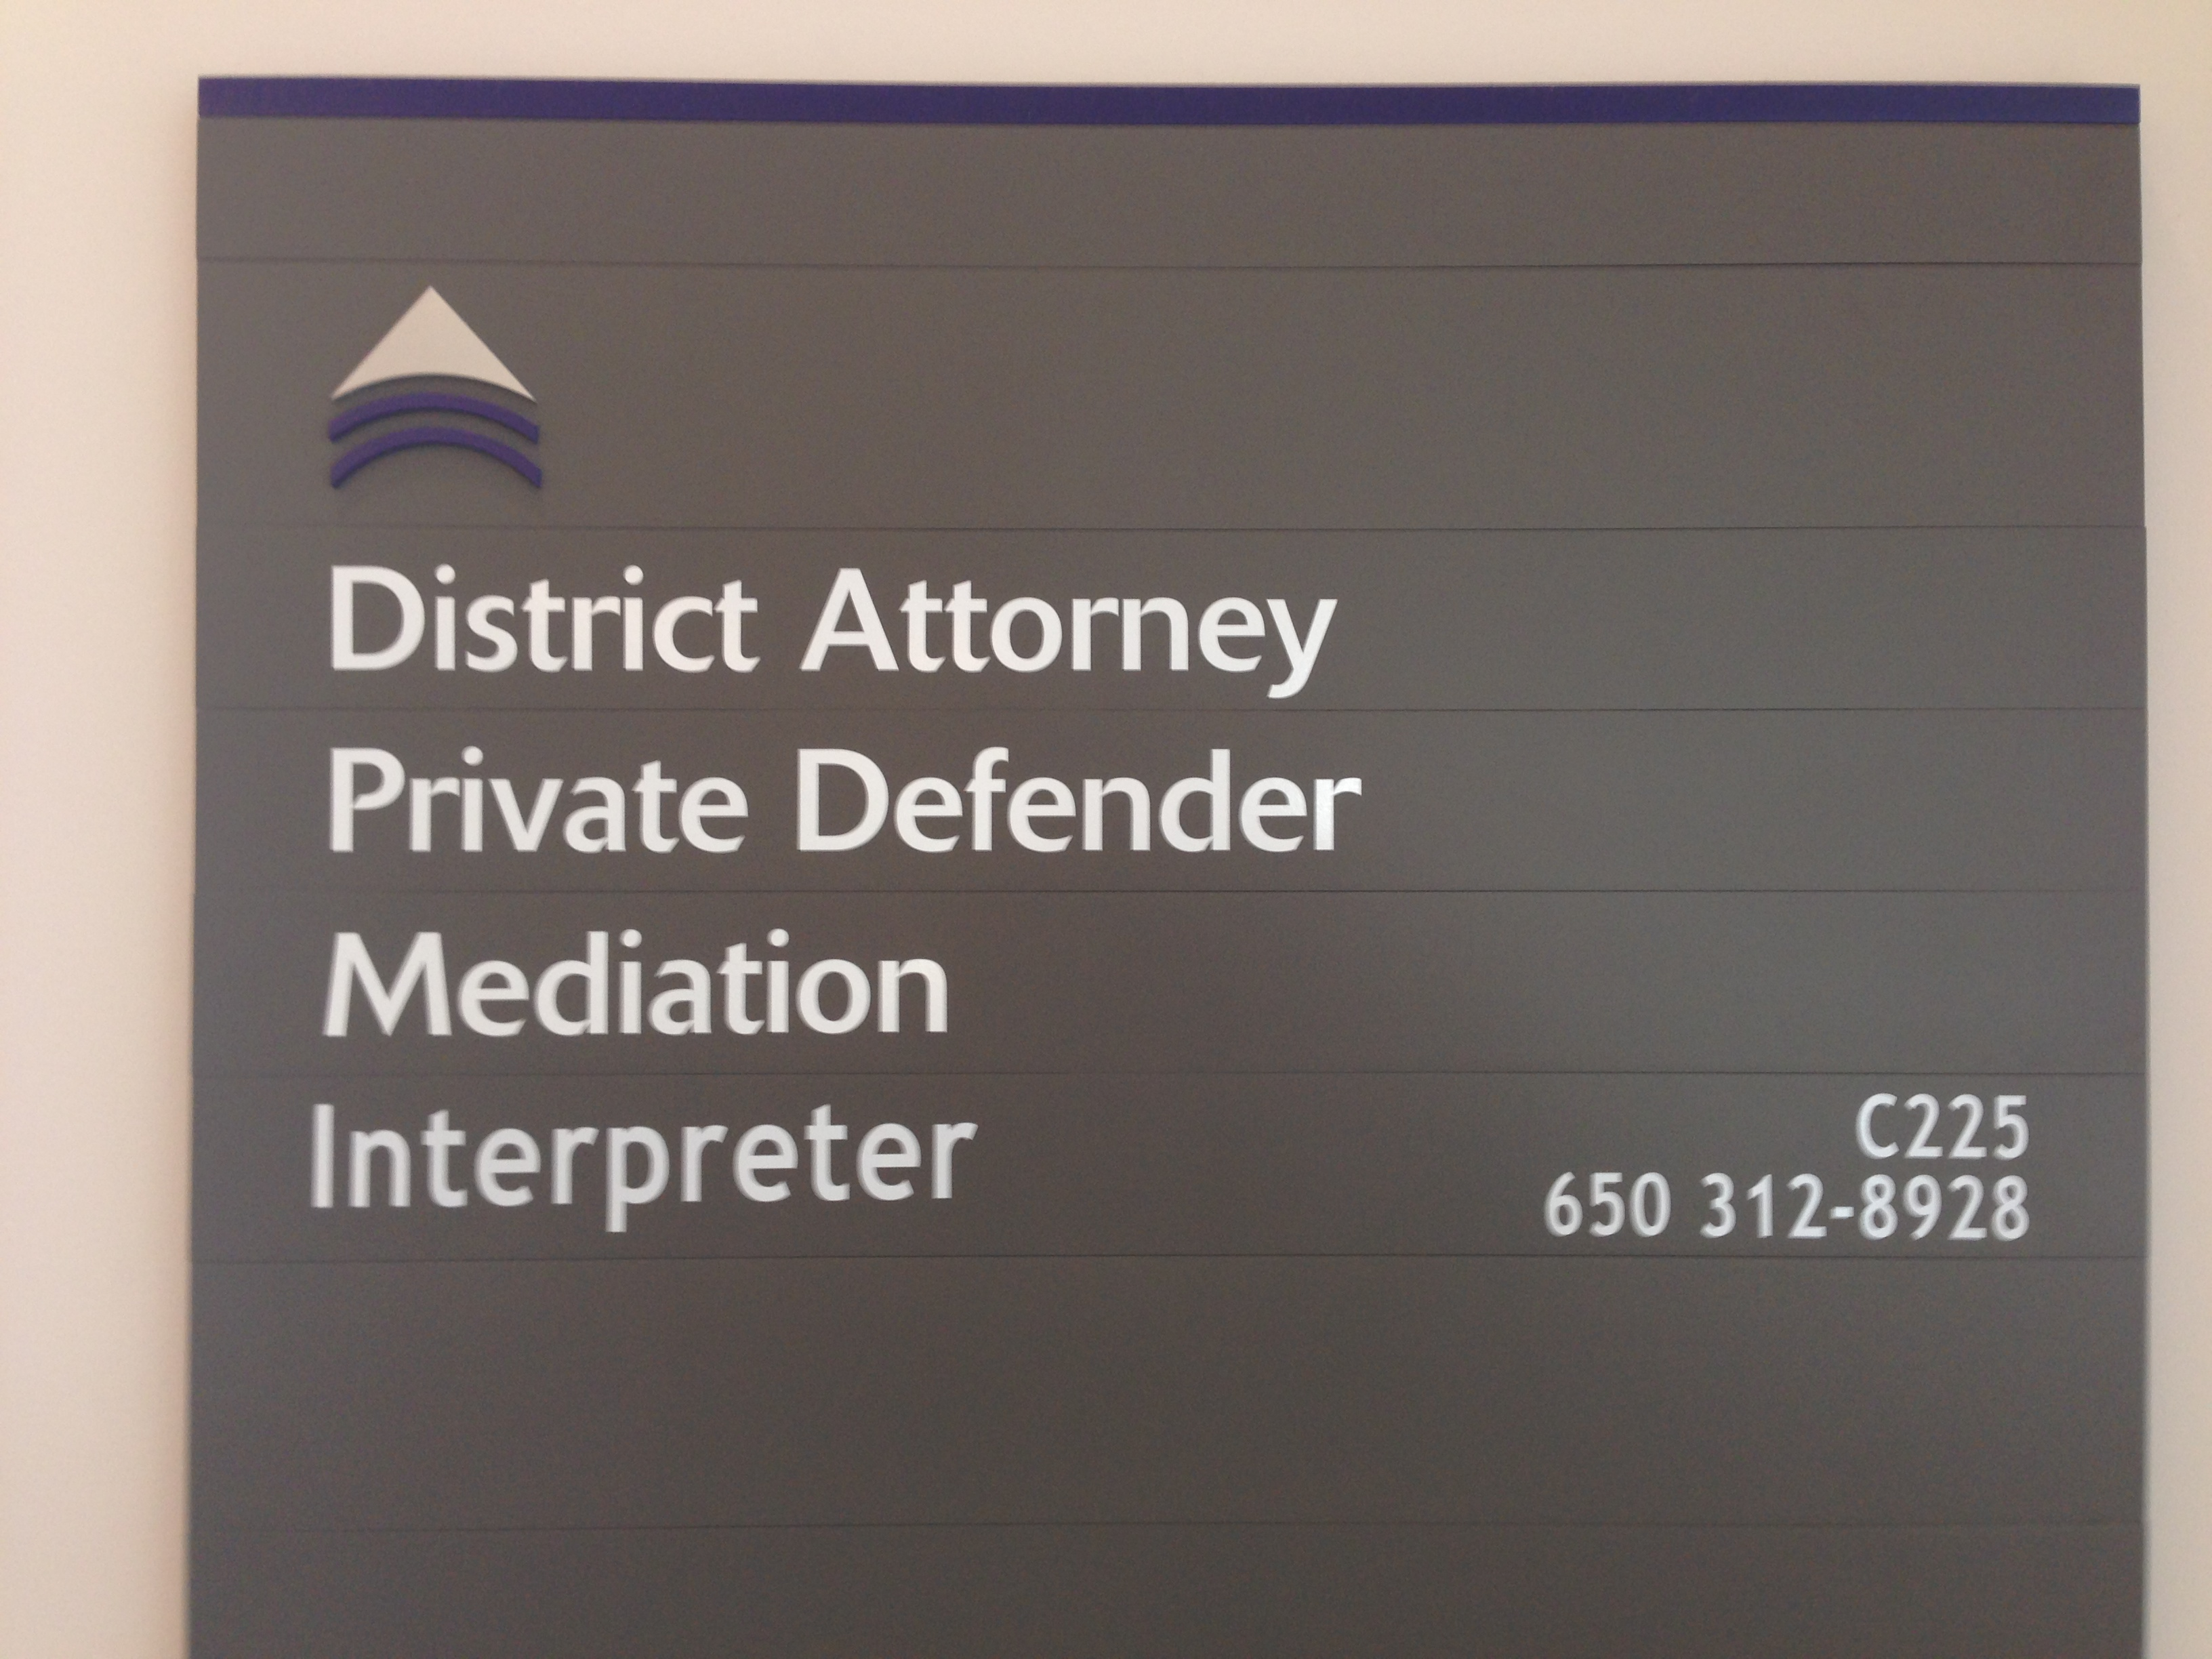 DA-PrivDefender-Mediation-Interpreter